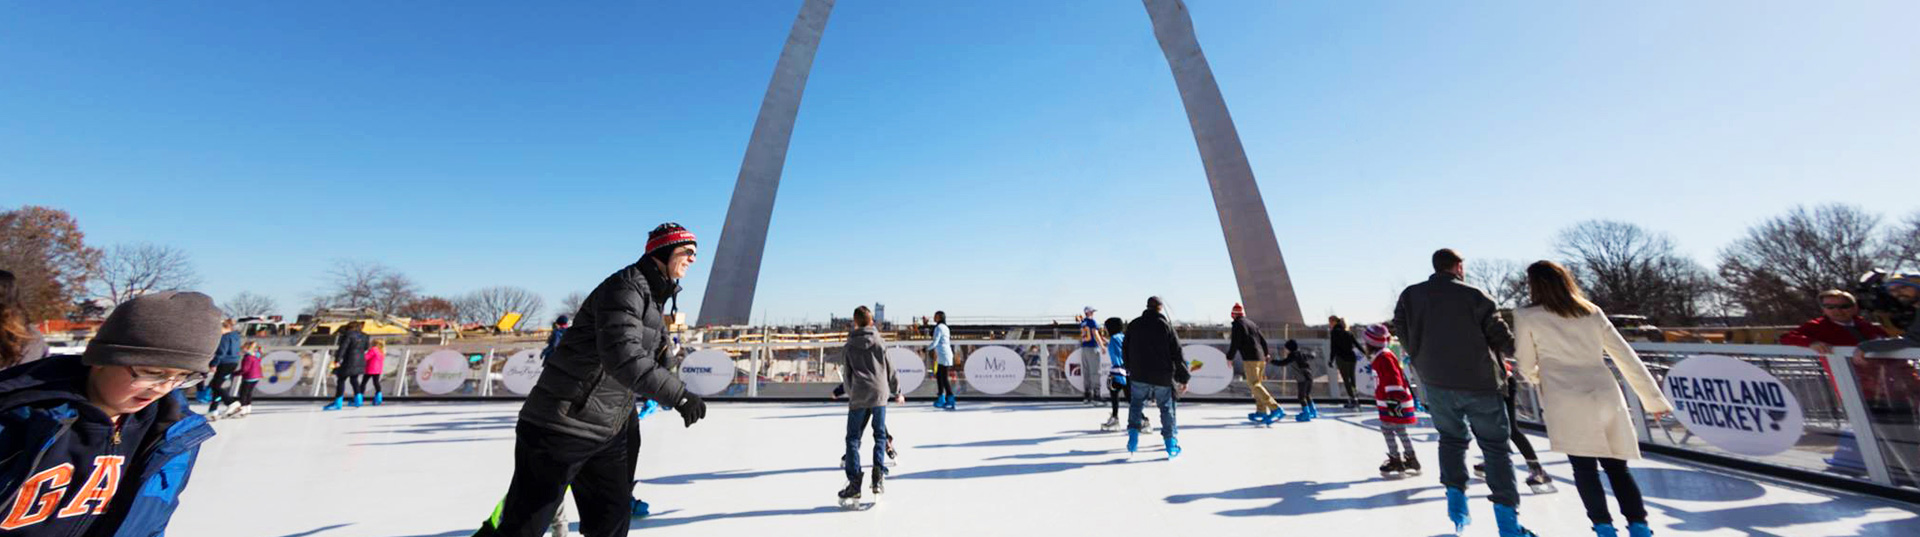 Portable ice skating rink Xtraice | Synthetic surface